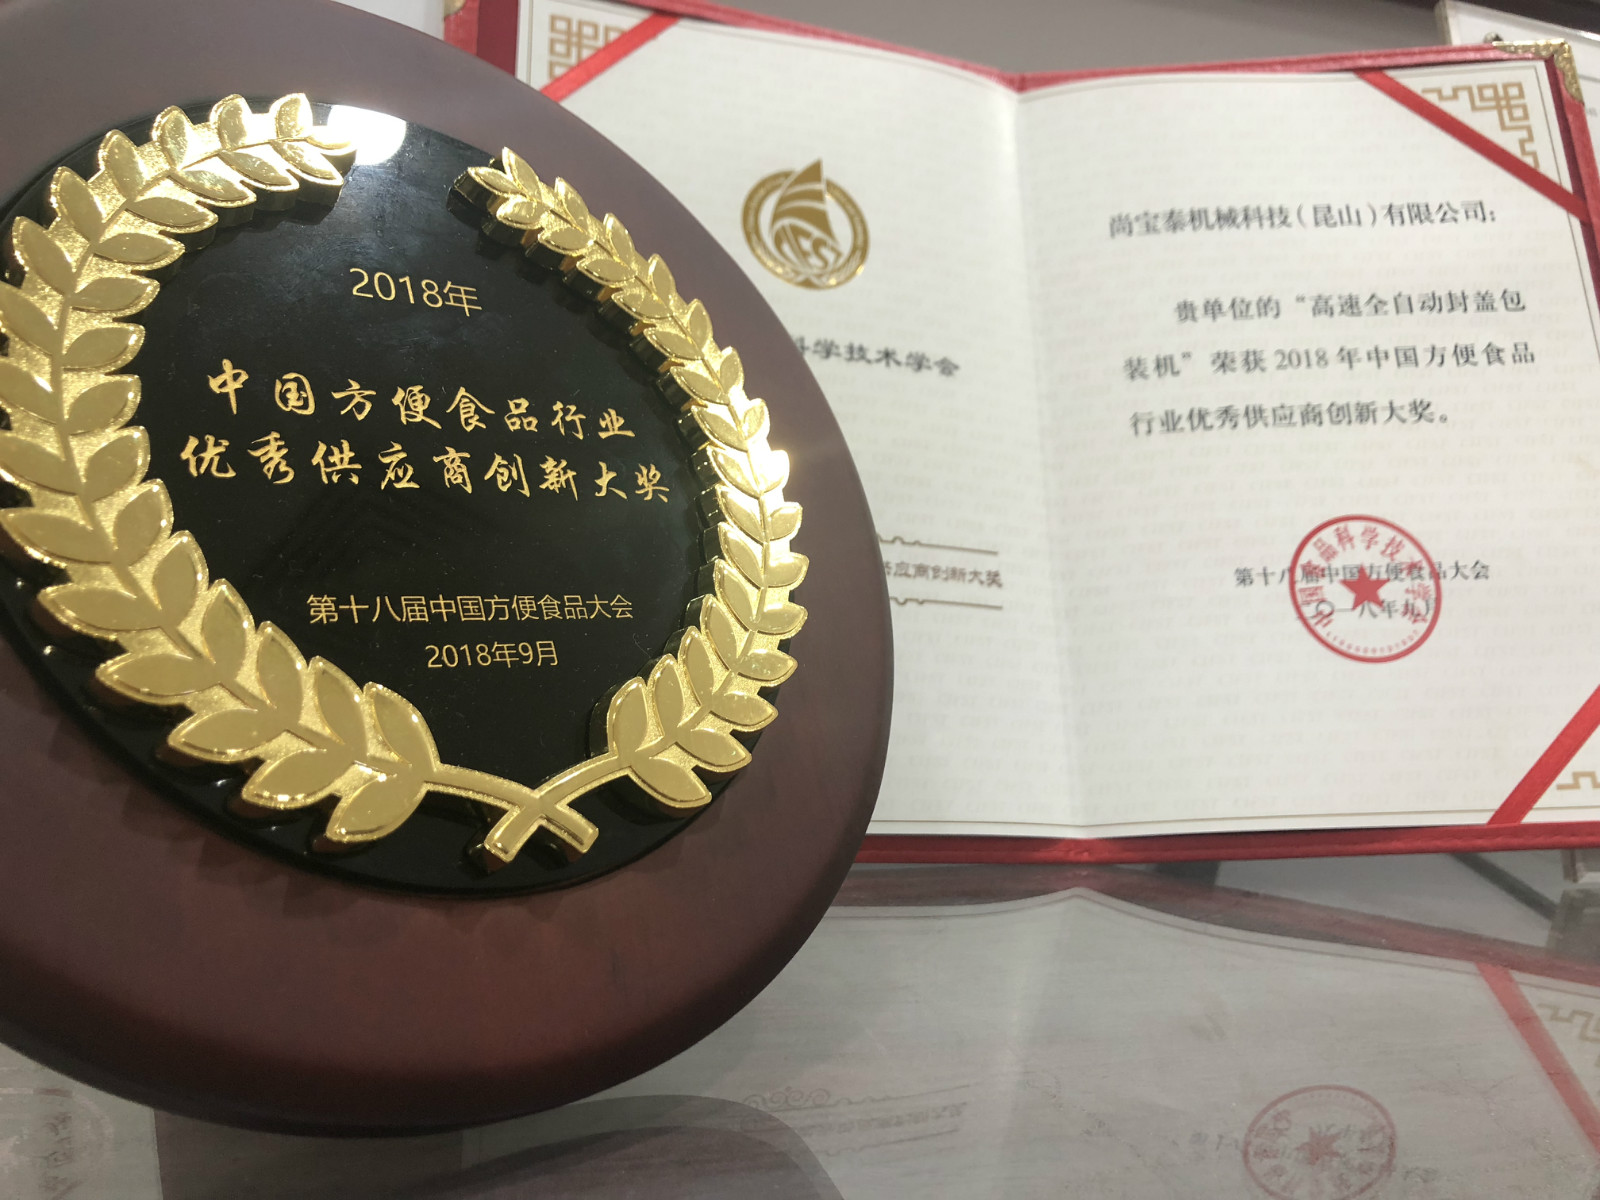 Shangbaotai Won the Excellent Supplier Innovation Award in September